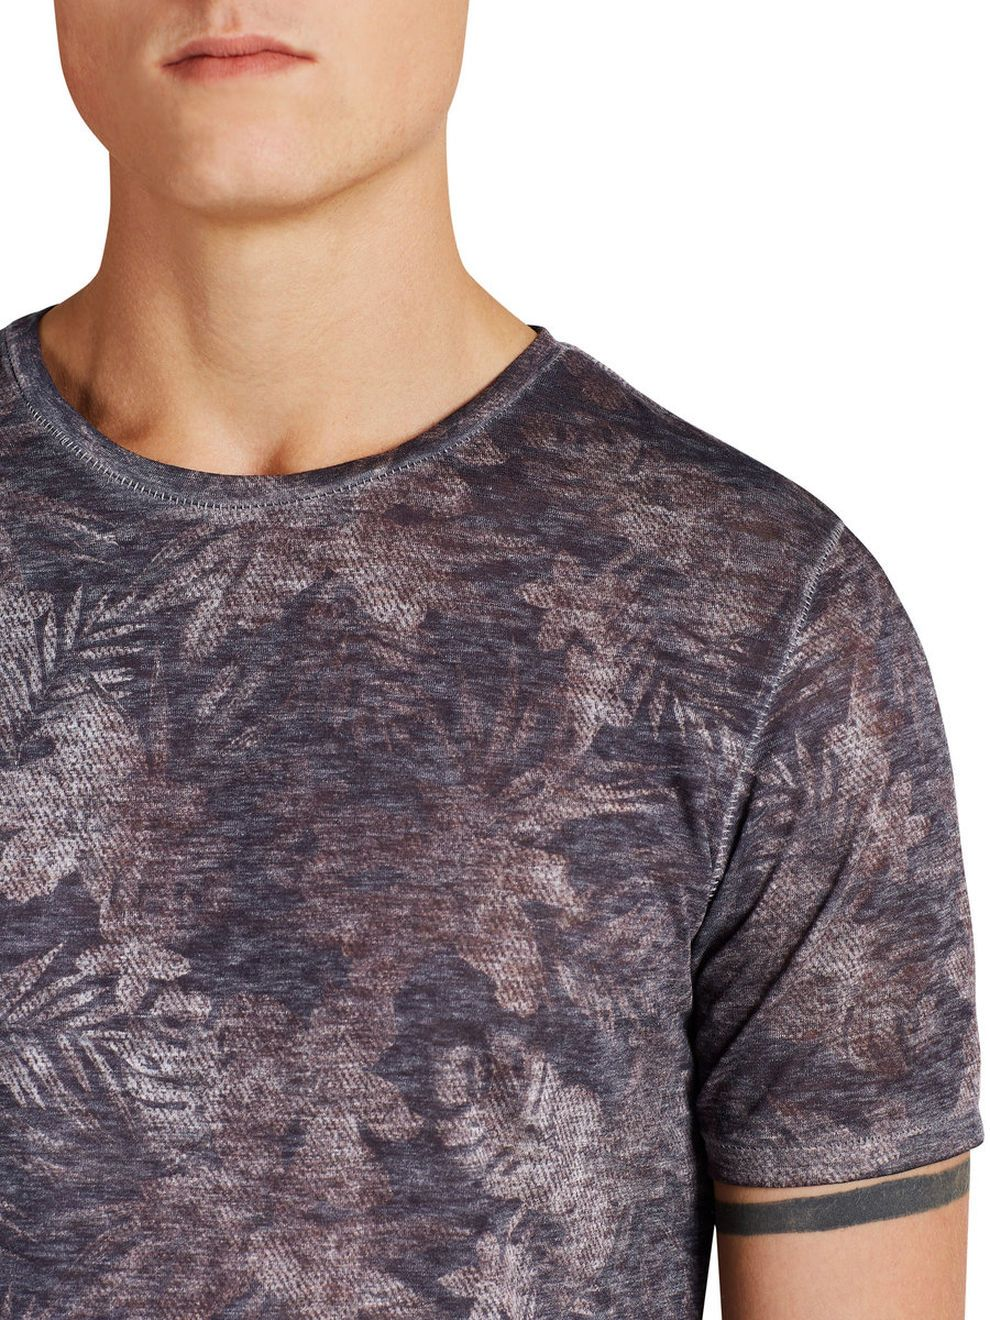 Faded floral T-SHIRT 65% Polyester, 35% Cotton - T-shirt in slim fit with floral prints everywhere - Pure cotton makes it soft and breathable - Flawless with unique fabric with burnout effect